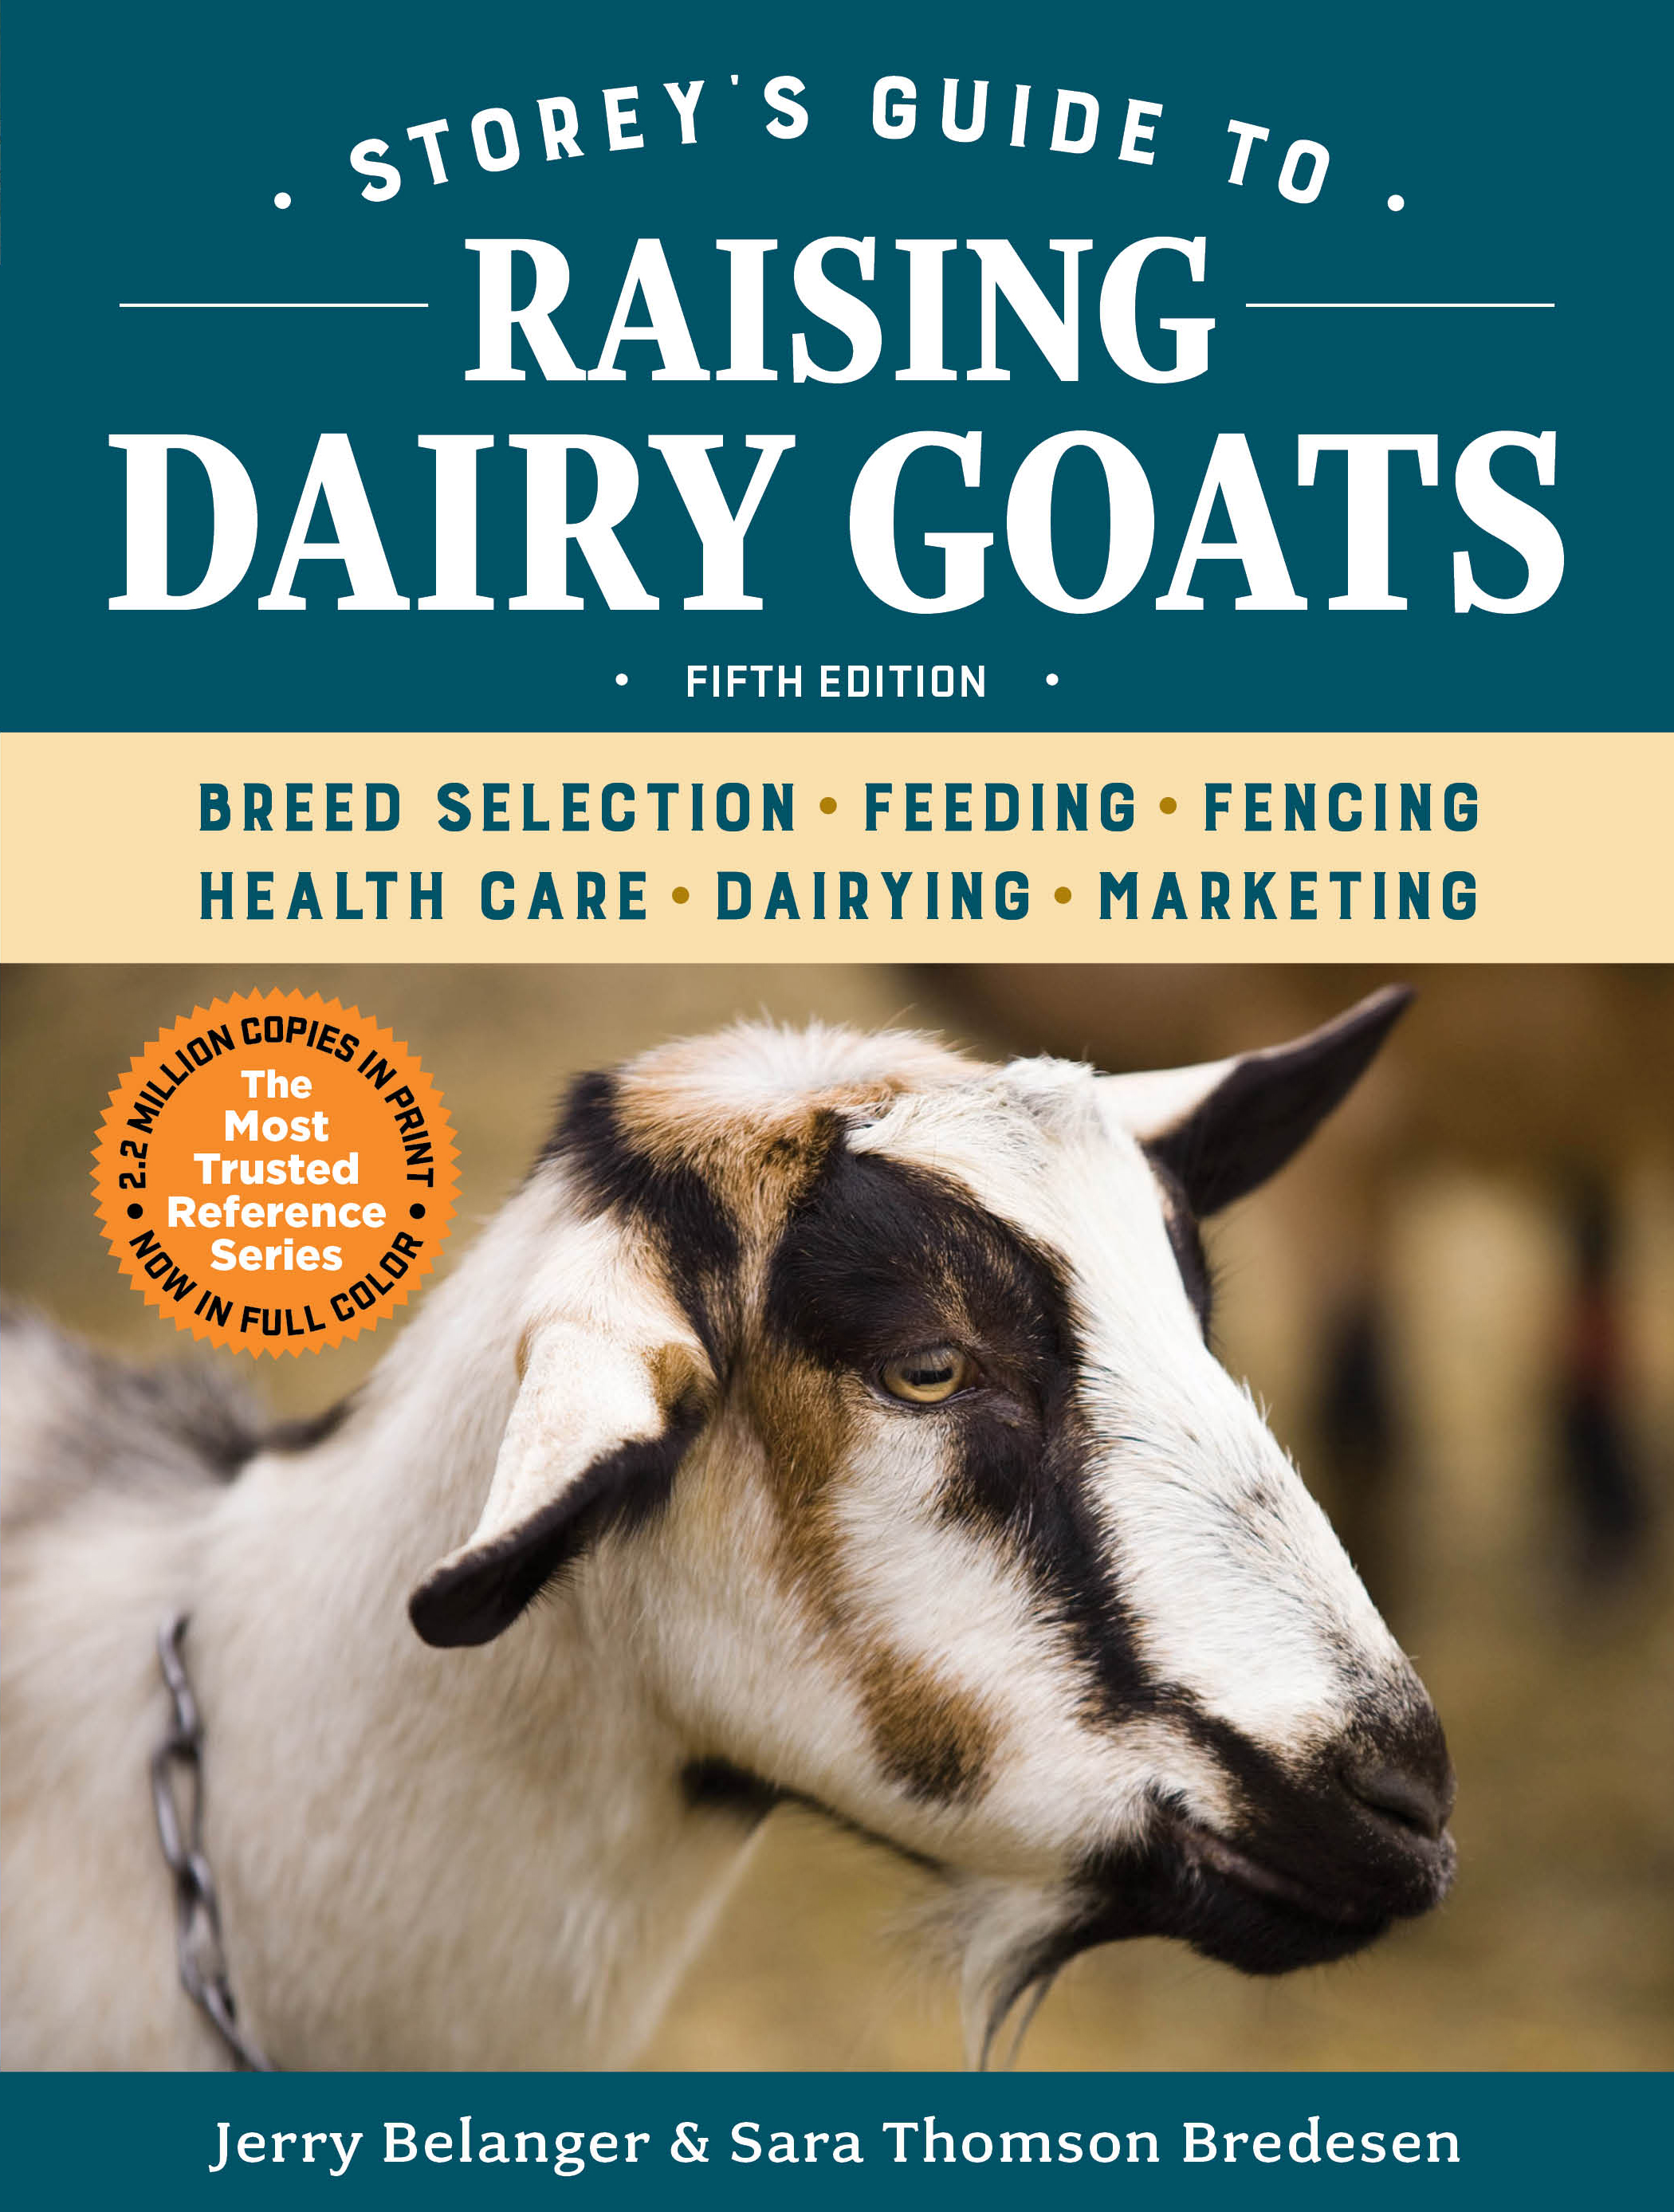 Storey's Guide to Raising Dairy Goats, 5th Edition Breed Selection, Feeding, Fencing, Health Care, Dairying, Marketing - Jerry Belanger